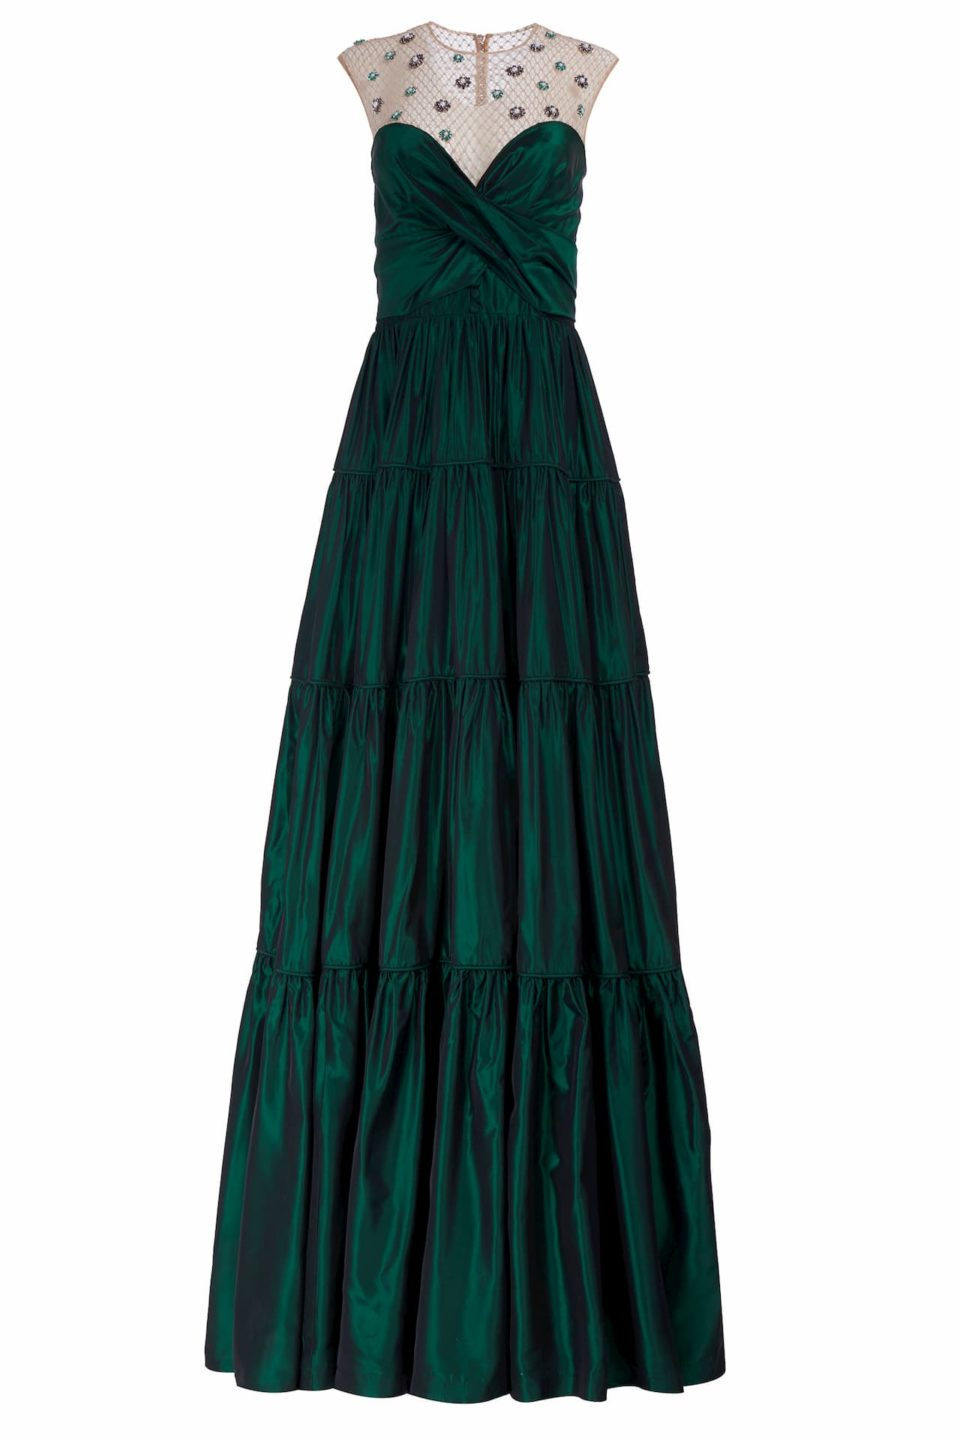 Genavieve FW2072 green Taffeta Tiered Sweetheart-Neckline Gown with Embellished Illusion-Neckline